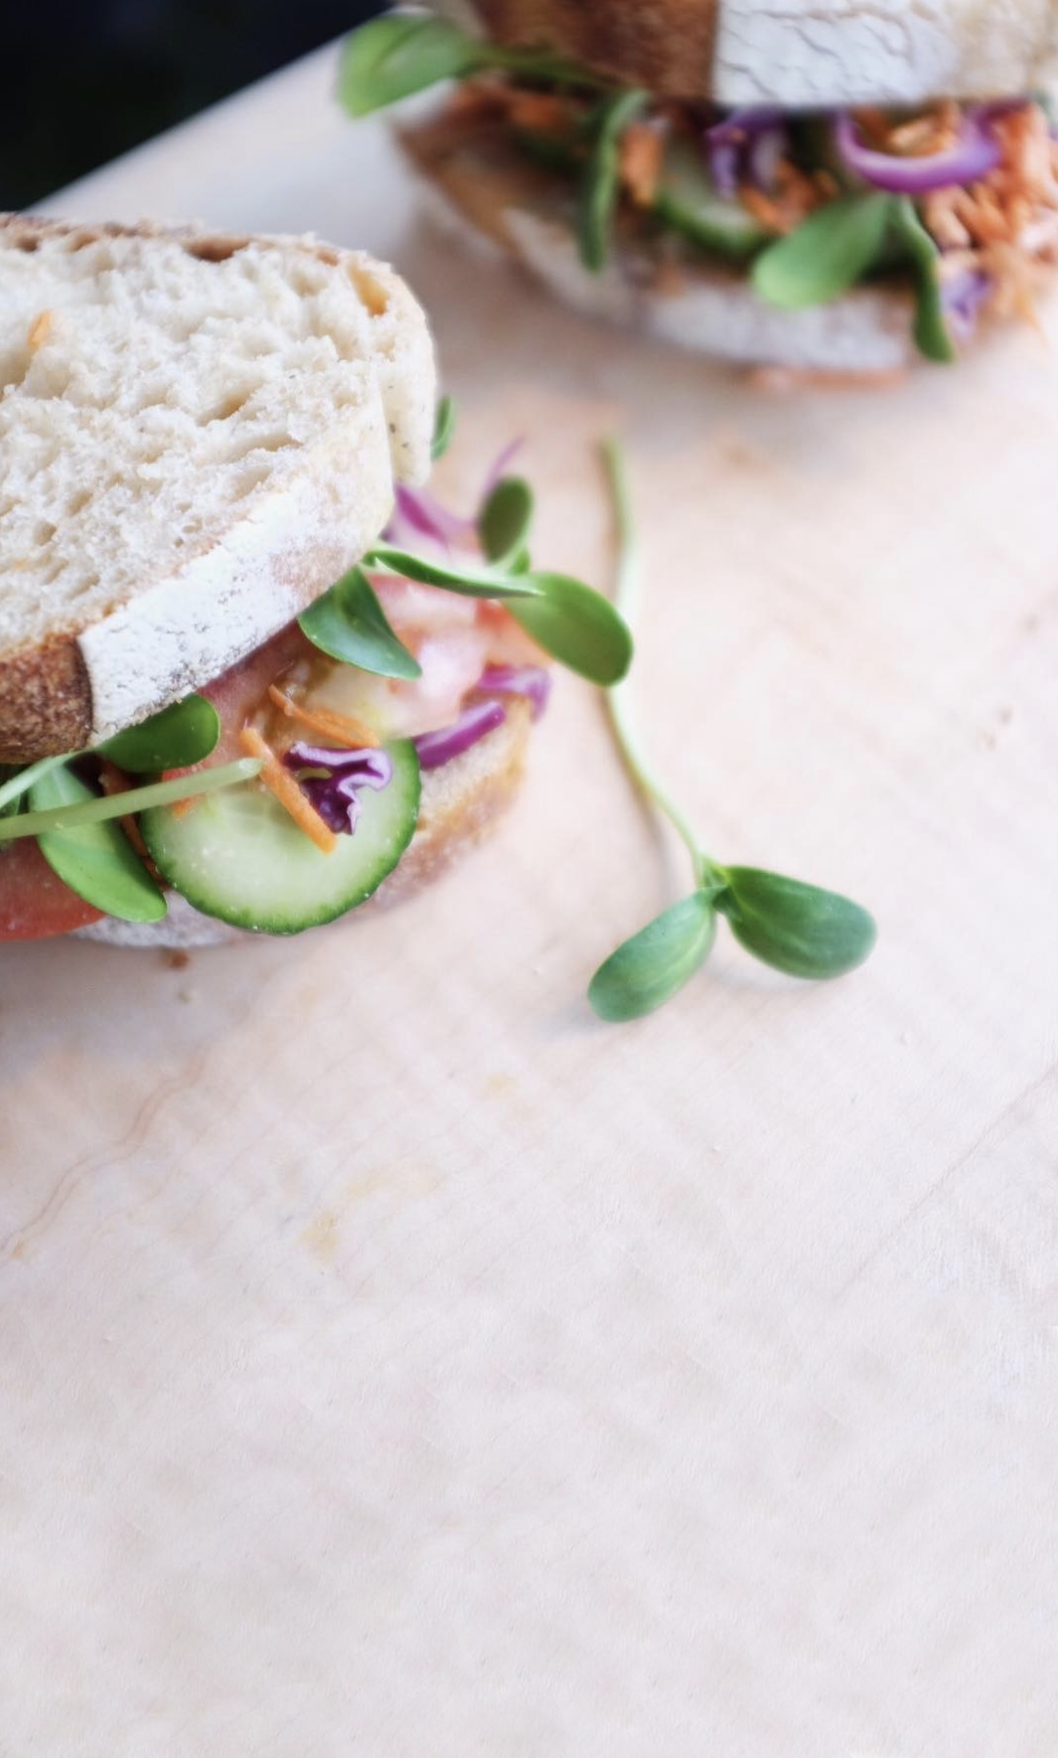 freshly made sandwiches - We use ethically sourced local meats in our products to ensure quality and reduce our ecological footprint.